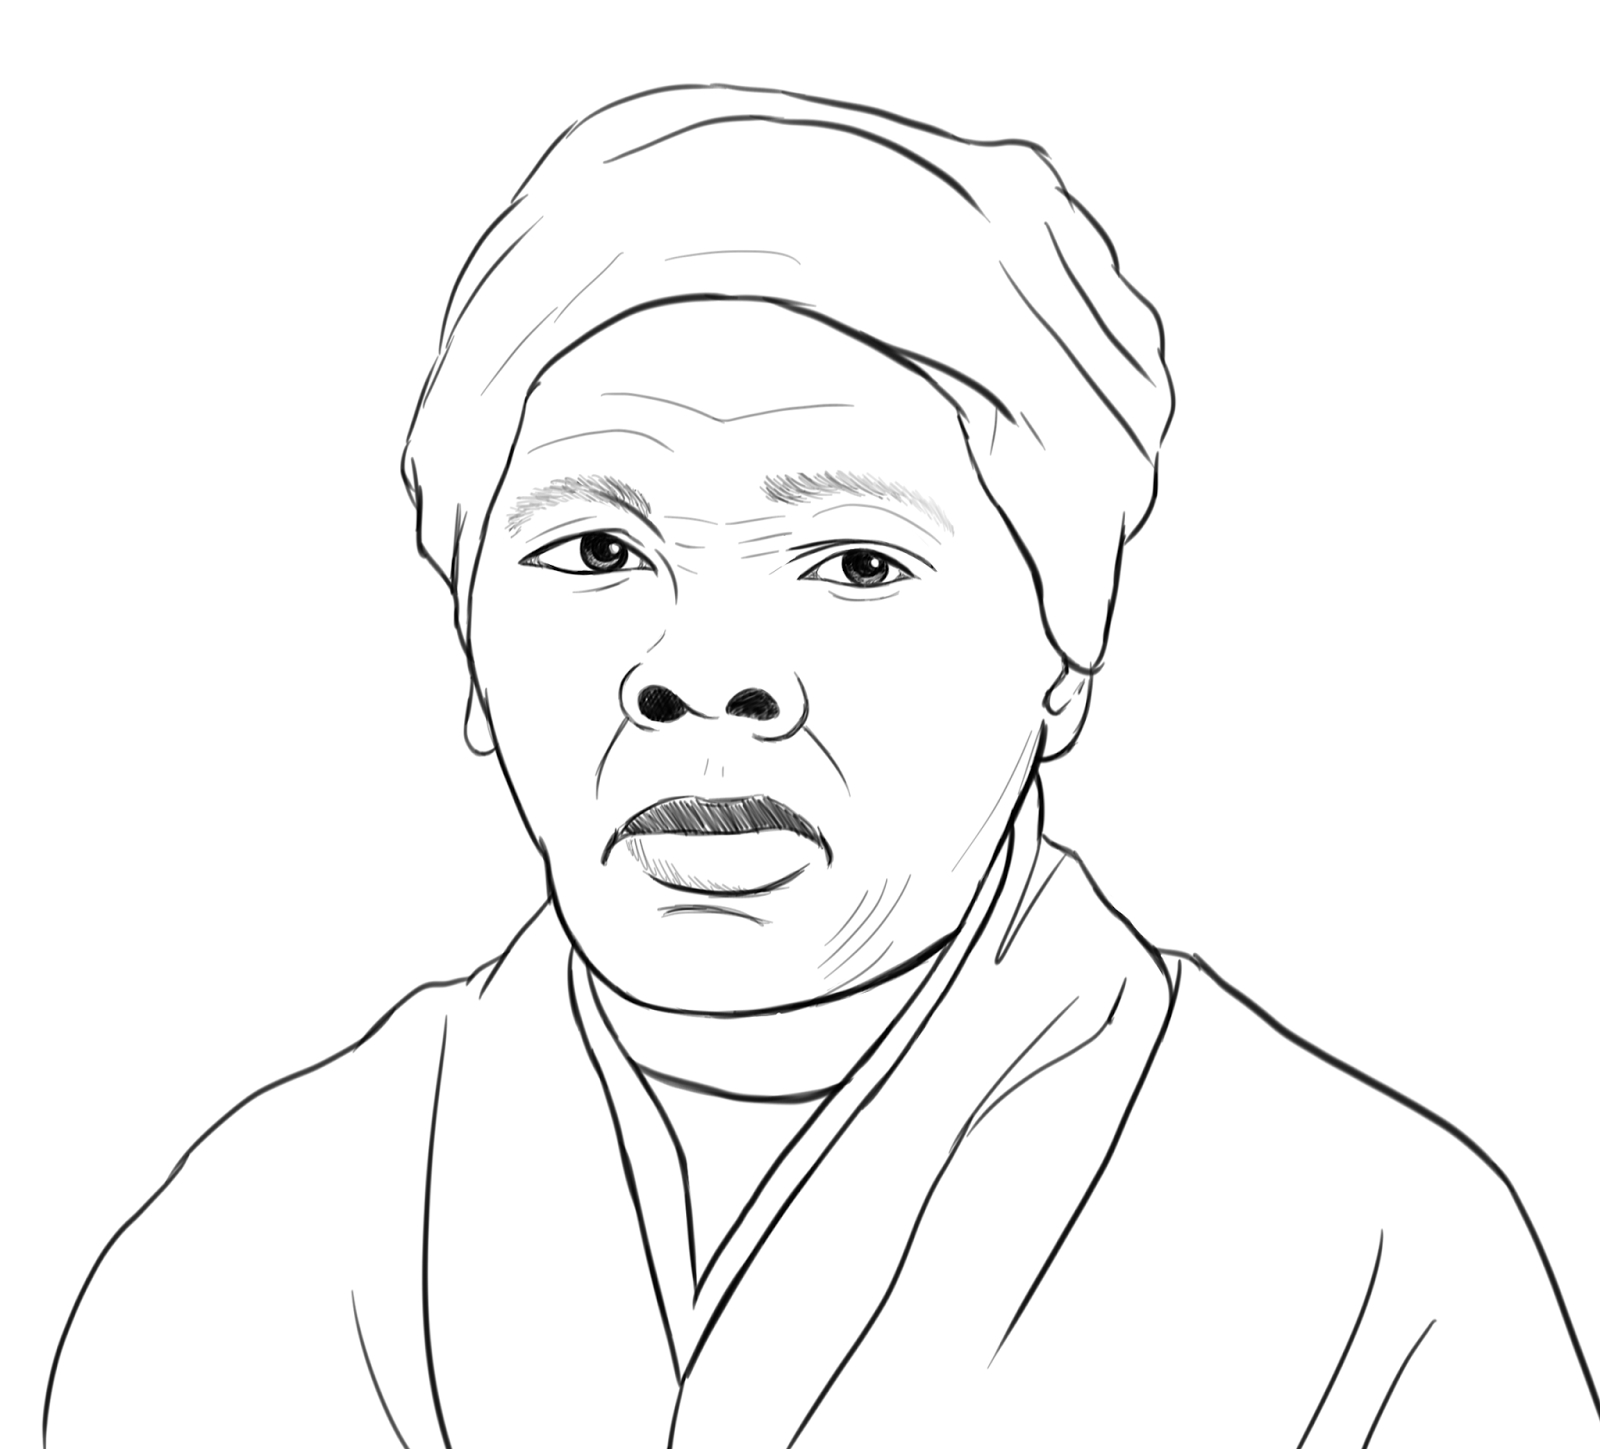 20 Harriet Tubman Coloring Page Compilation | FREE COLORING PAGES ...